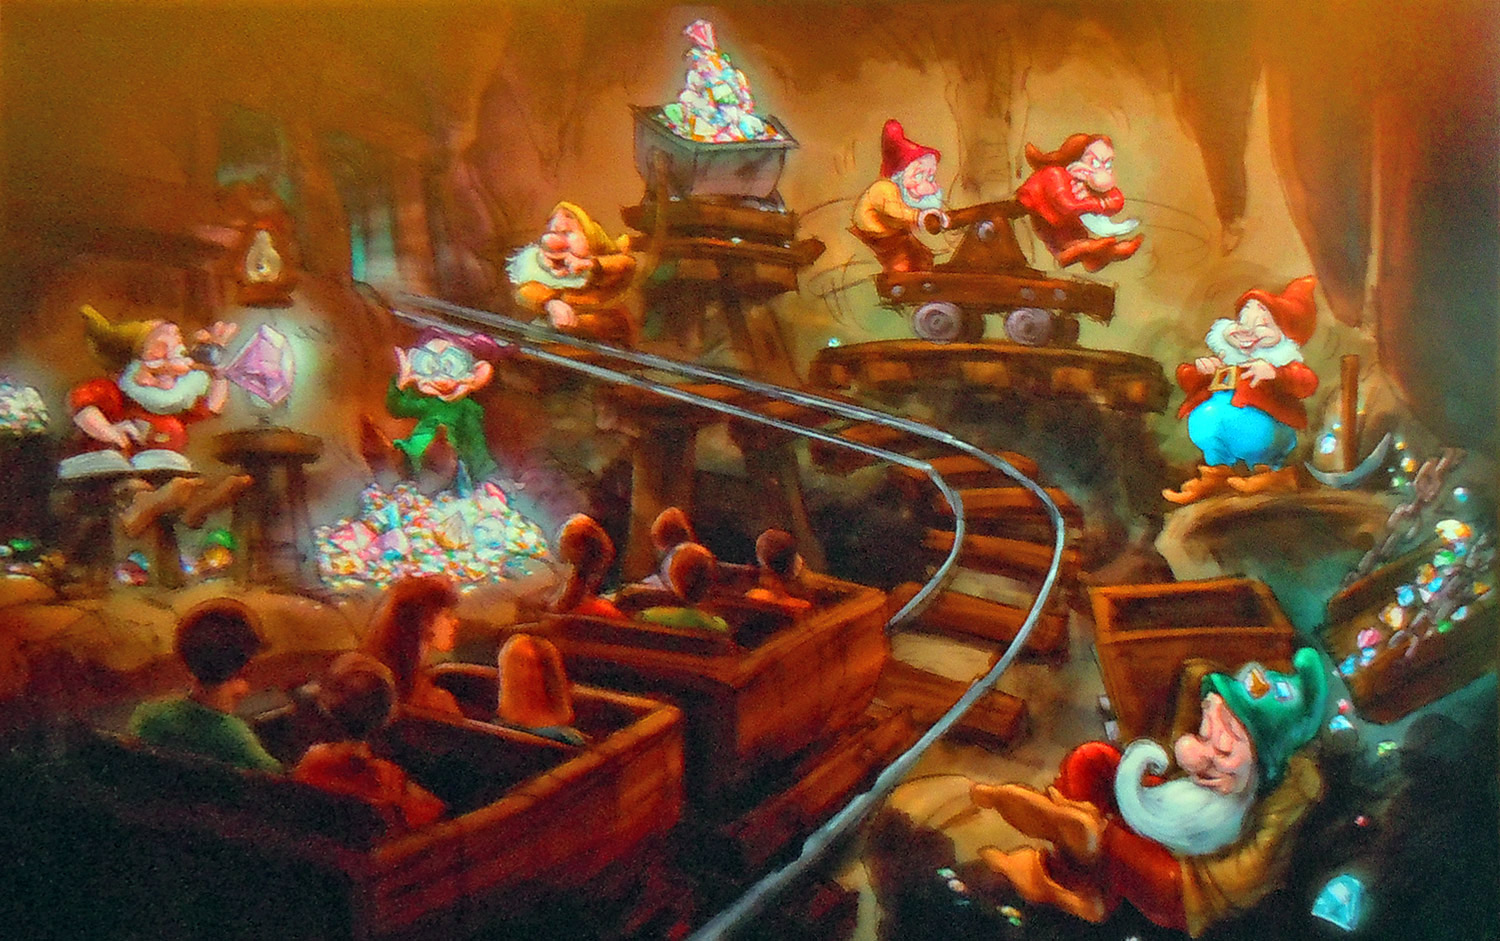 Walt Disney Imagineering just shared a new video with us that offers up a look inside the two attractions in New Fantasyland that are still yet to debut: Princess Fairytale Hall and Seven Dwarfs Mine Train.